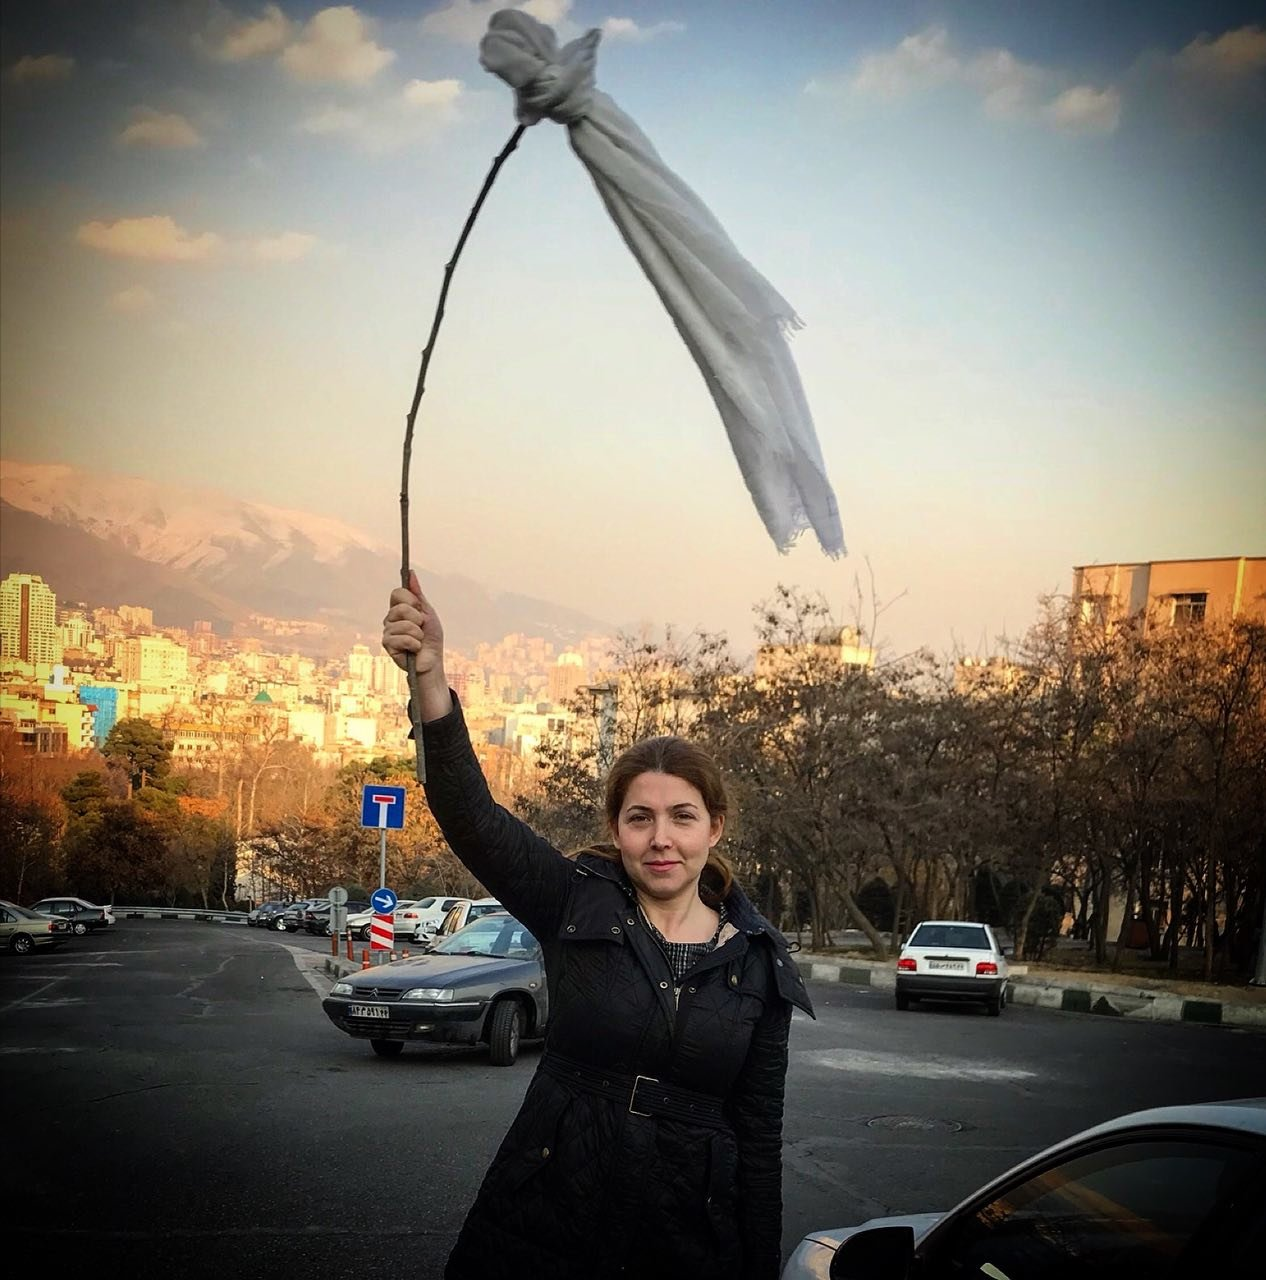 La denuncia di my stealthy freedom. Opinion Why Iranian Women Are Taking Off Their Head Scarves The New York Times